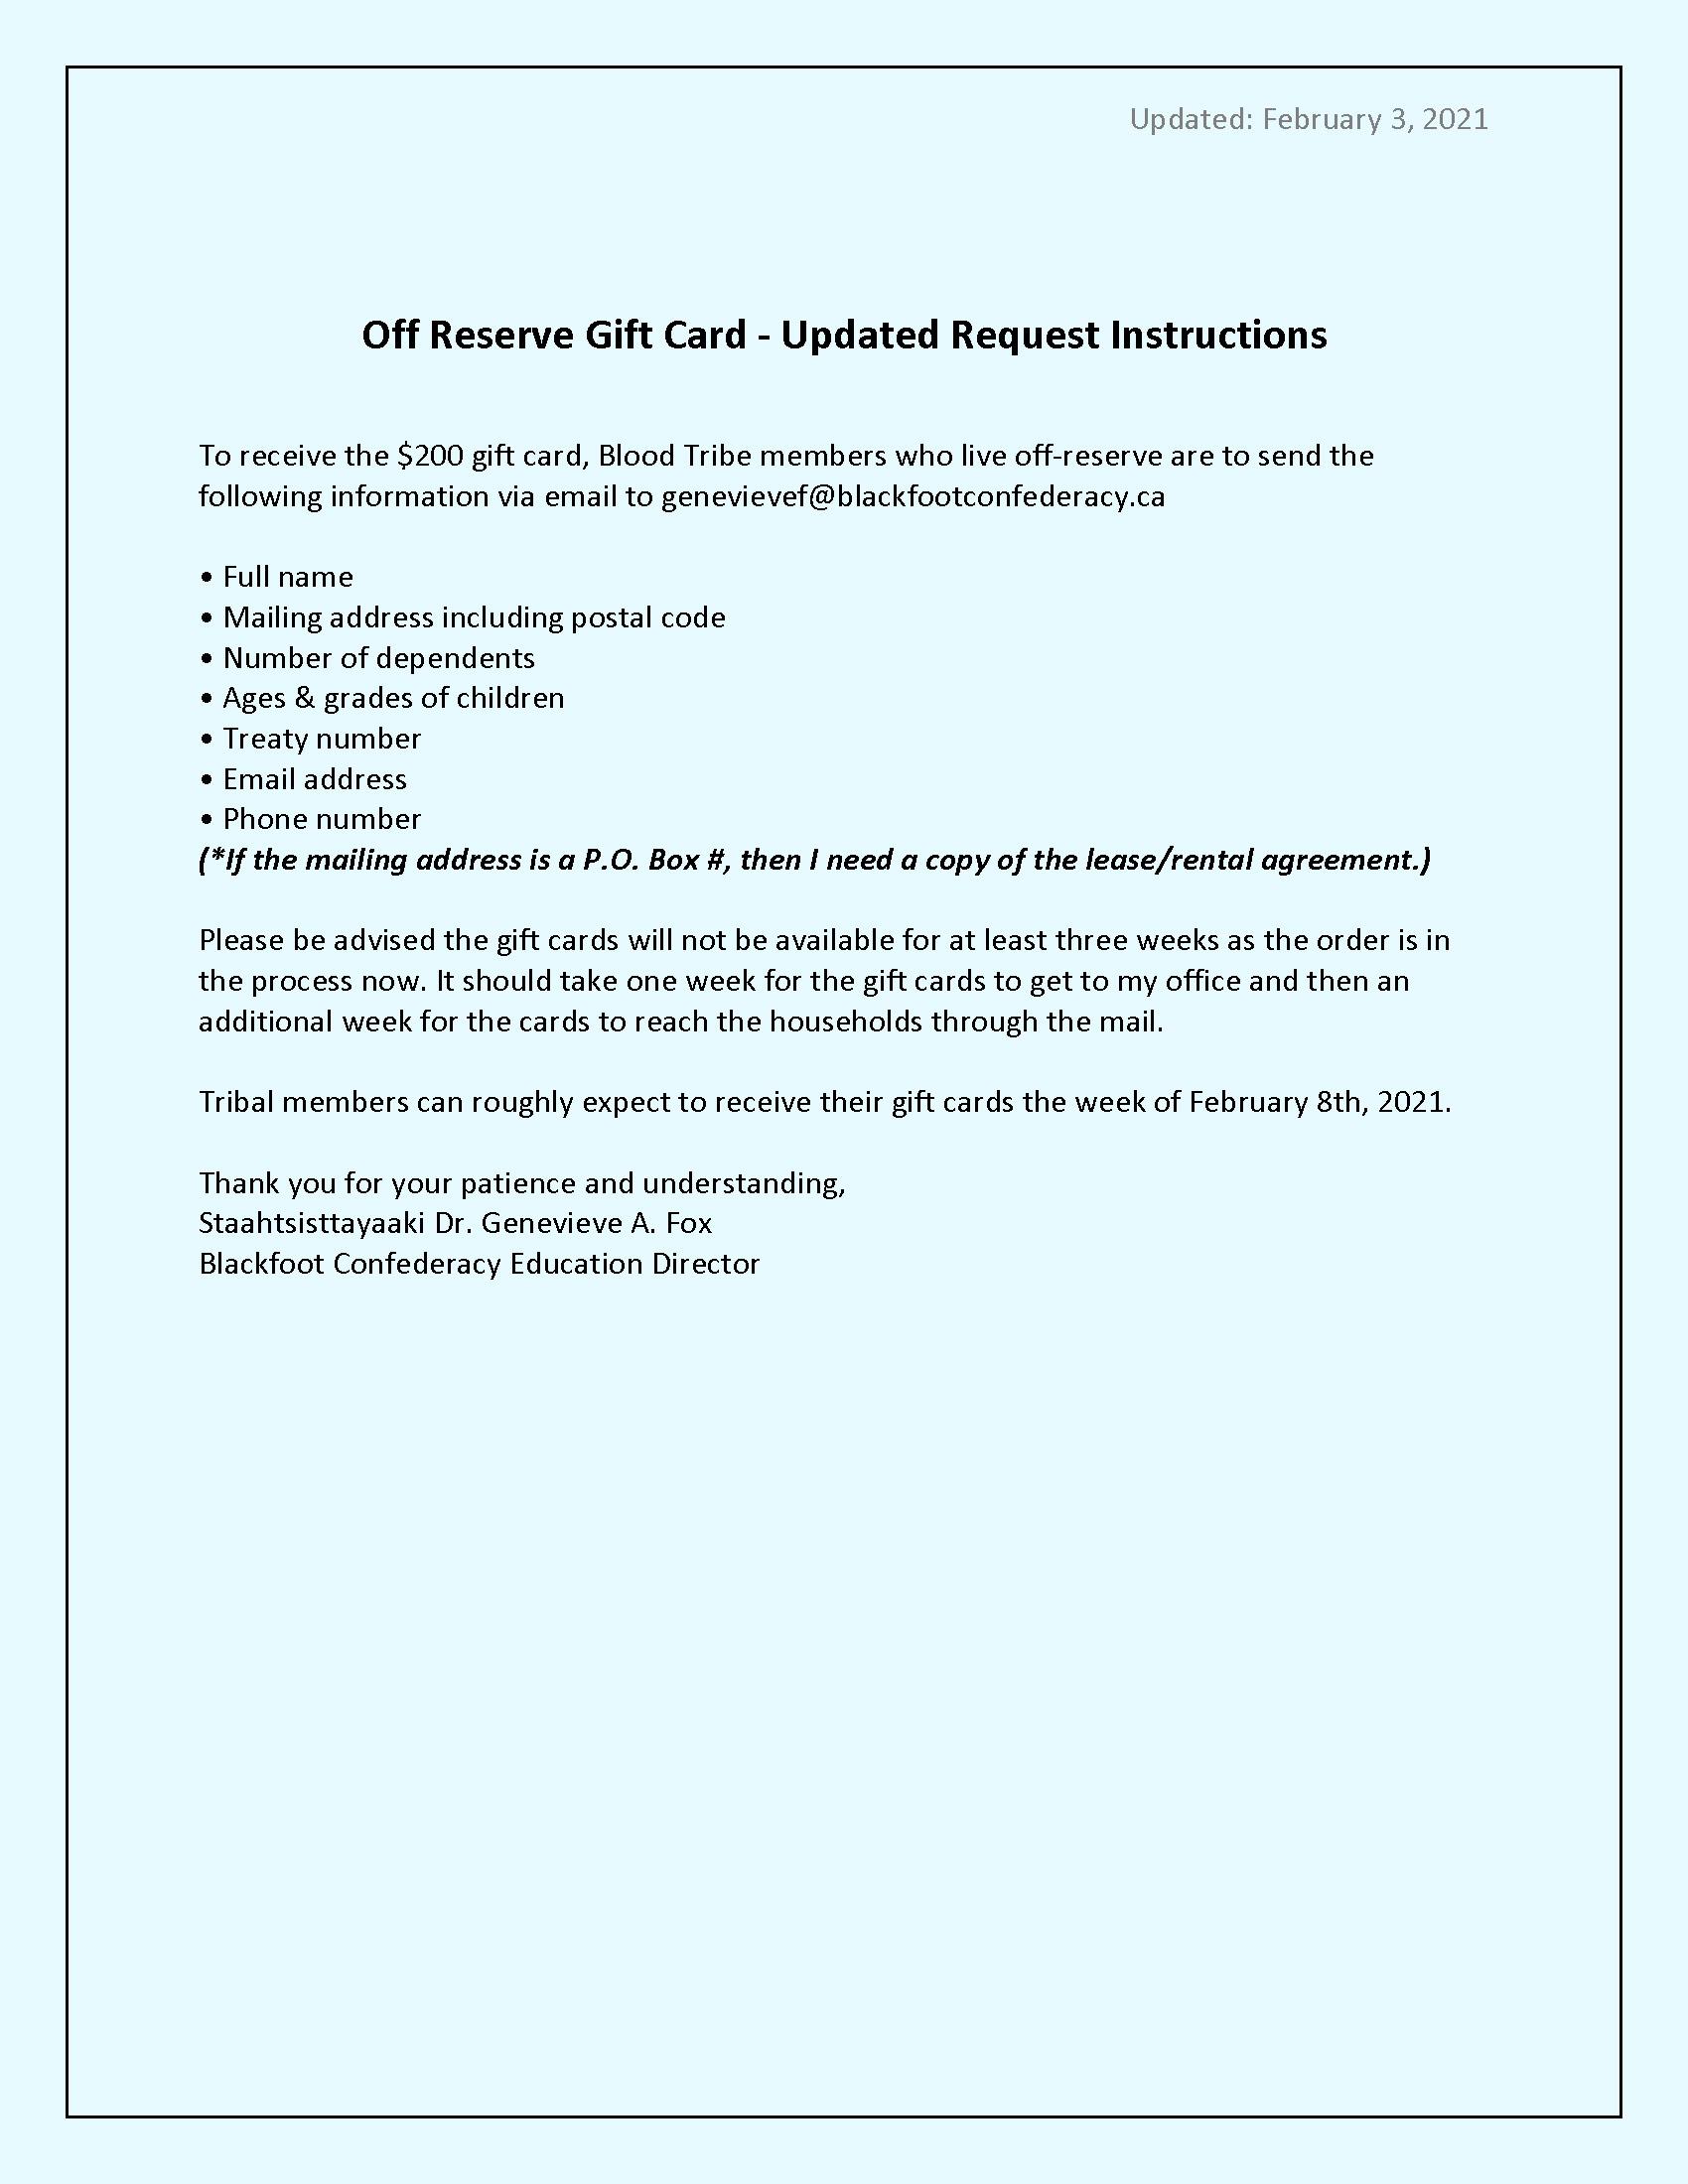 Off Reserve - Gift Card Requirements